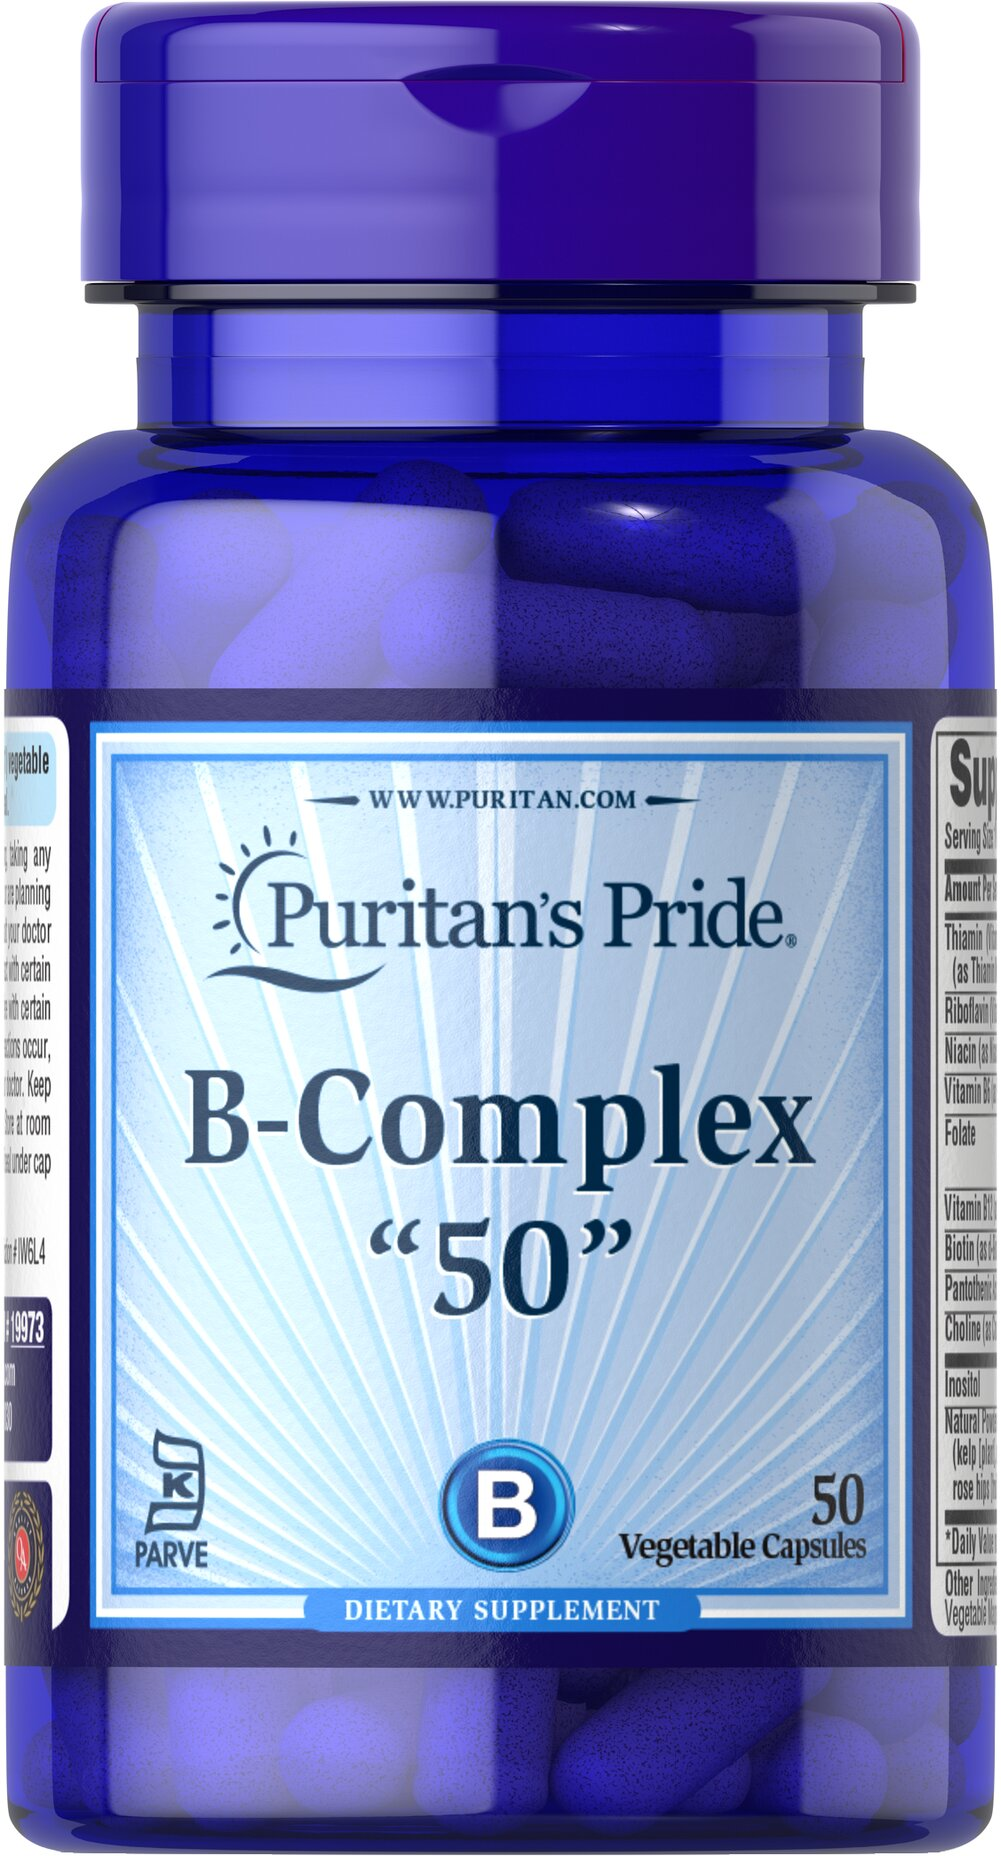 Vitamin B-50 Complex 50 mg Kosher <p>Essential B-Vitamins in a Kosher Capsule!</p> <p>Vitamin B-50 Kosher Complex helps support the nervous system and promotes energy metabolism**</p> <p>Includes a full day's serving of Folic Acid to support the heart, cell growth and women's reproductive health**</p> <p>Comes in a vegetable capsule and is free of corn, yeast, wheat, soy, and dairy products, as well as sugar, salt, and starch</p> <p>Prepared